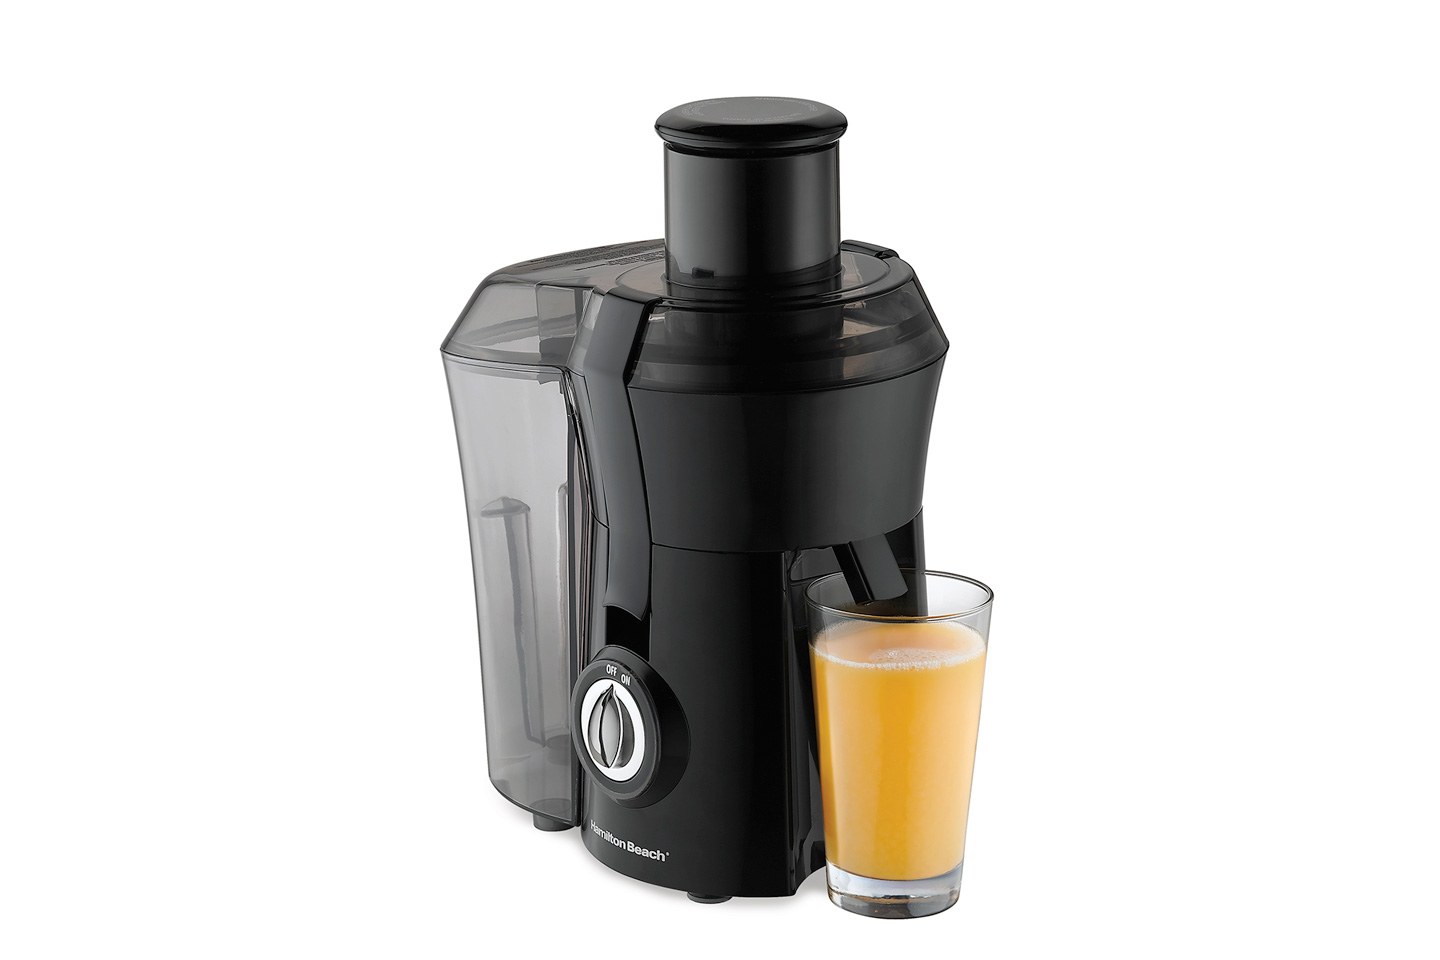 Hamilton Beach Big Mouth Juice Extractor Review | HeartyBlends.co